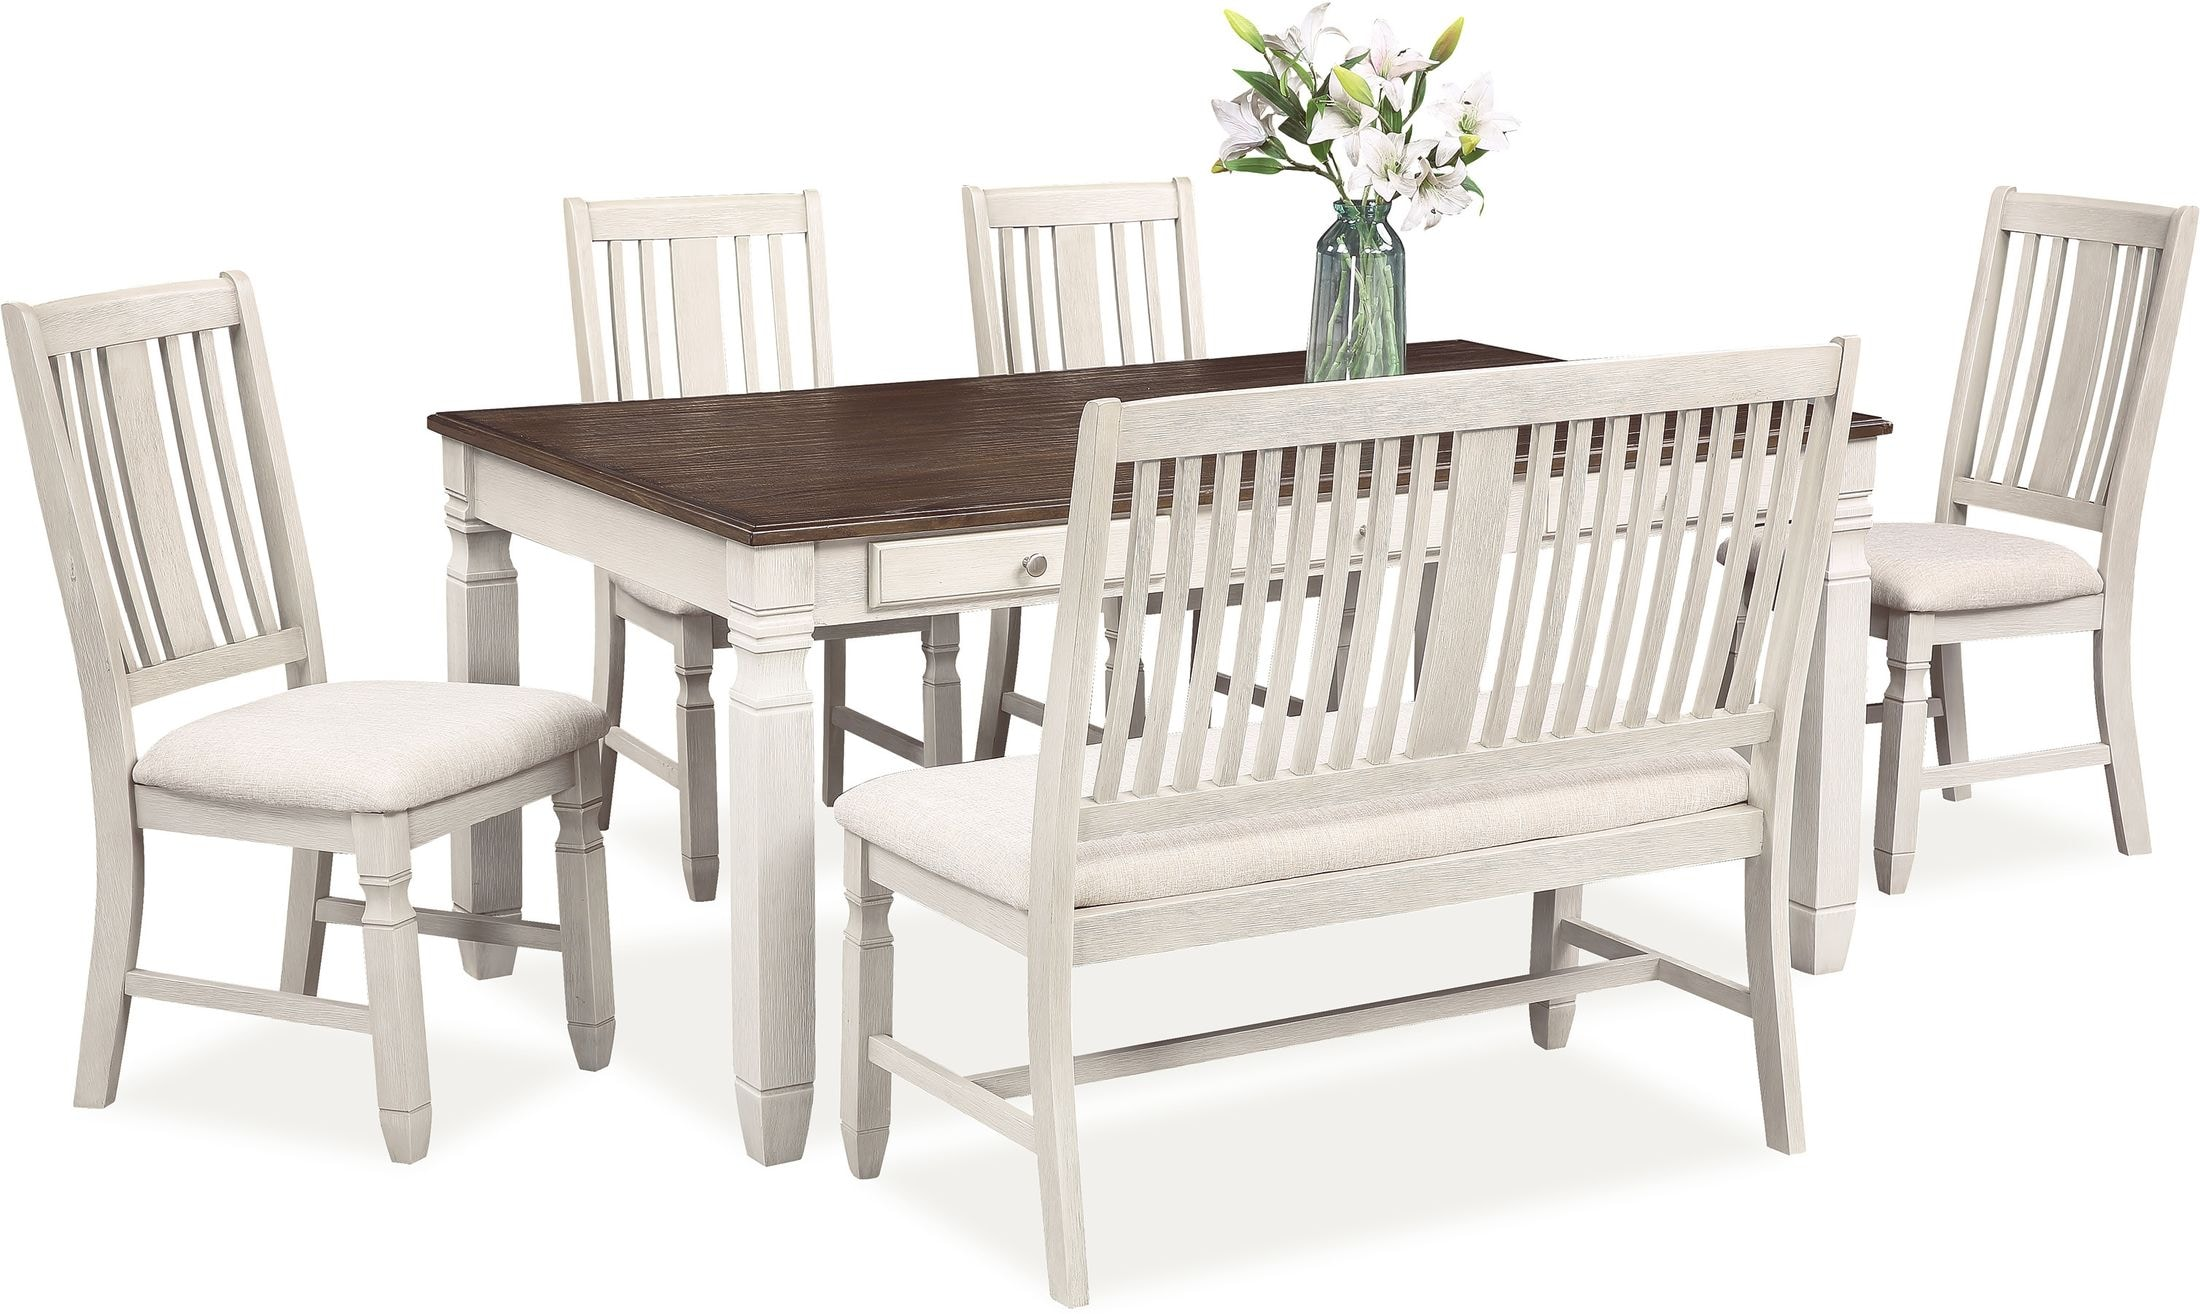 Dining Room Furniture - Glendale Dining Table, 4 Chairs and Bench